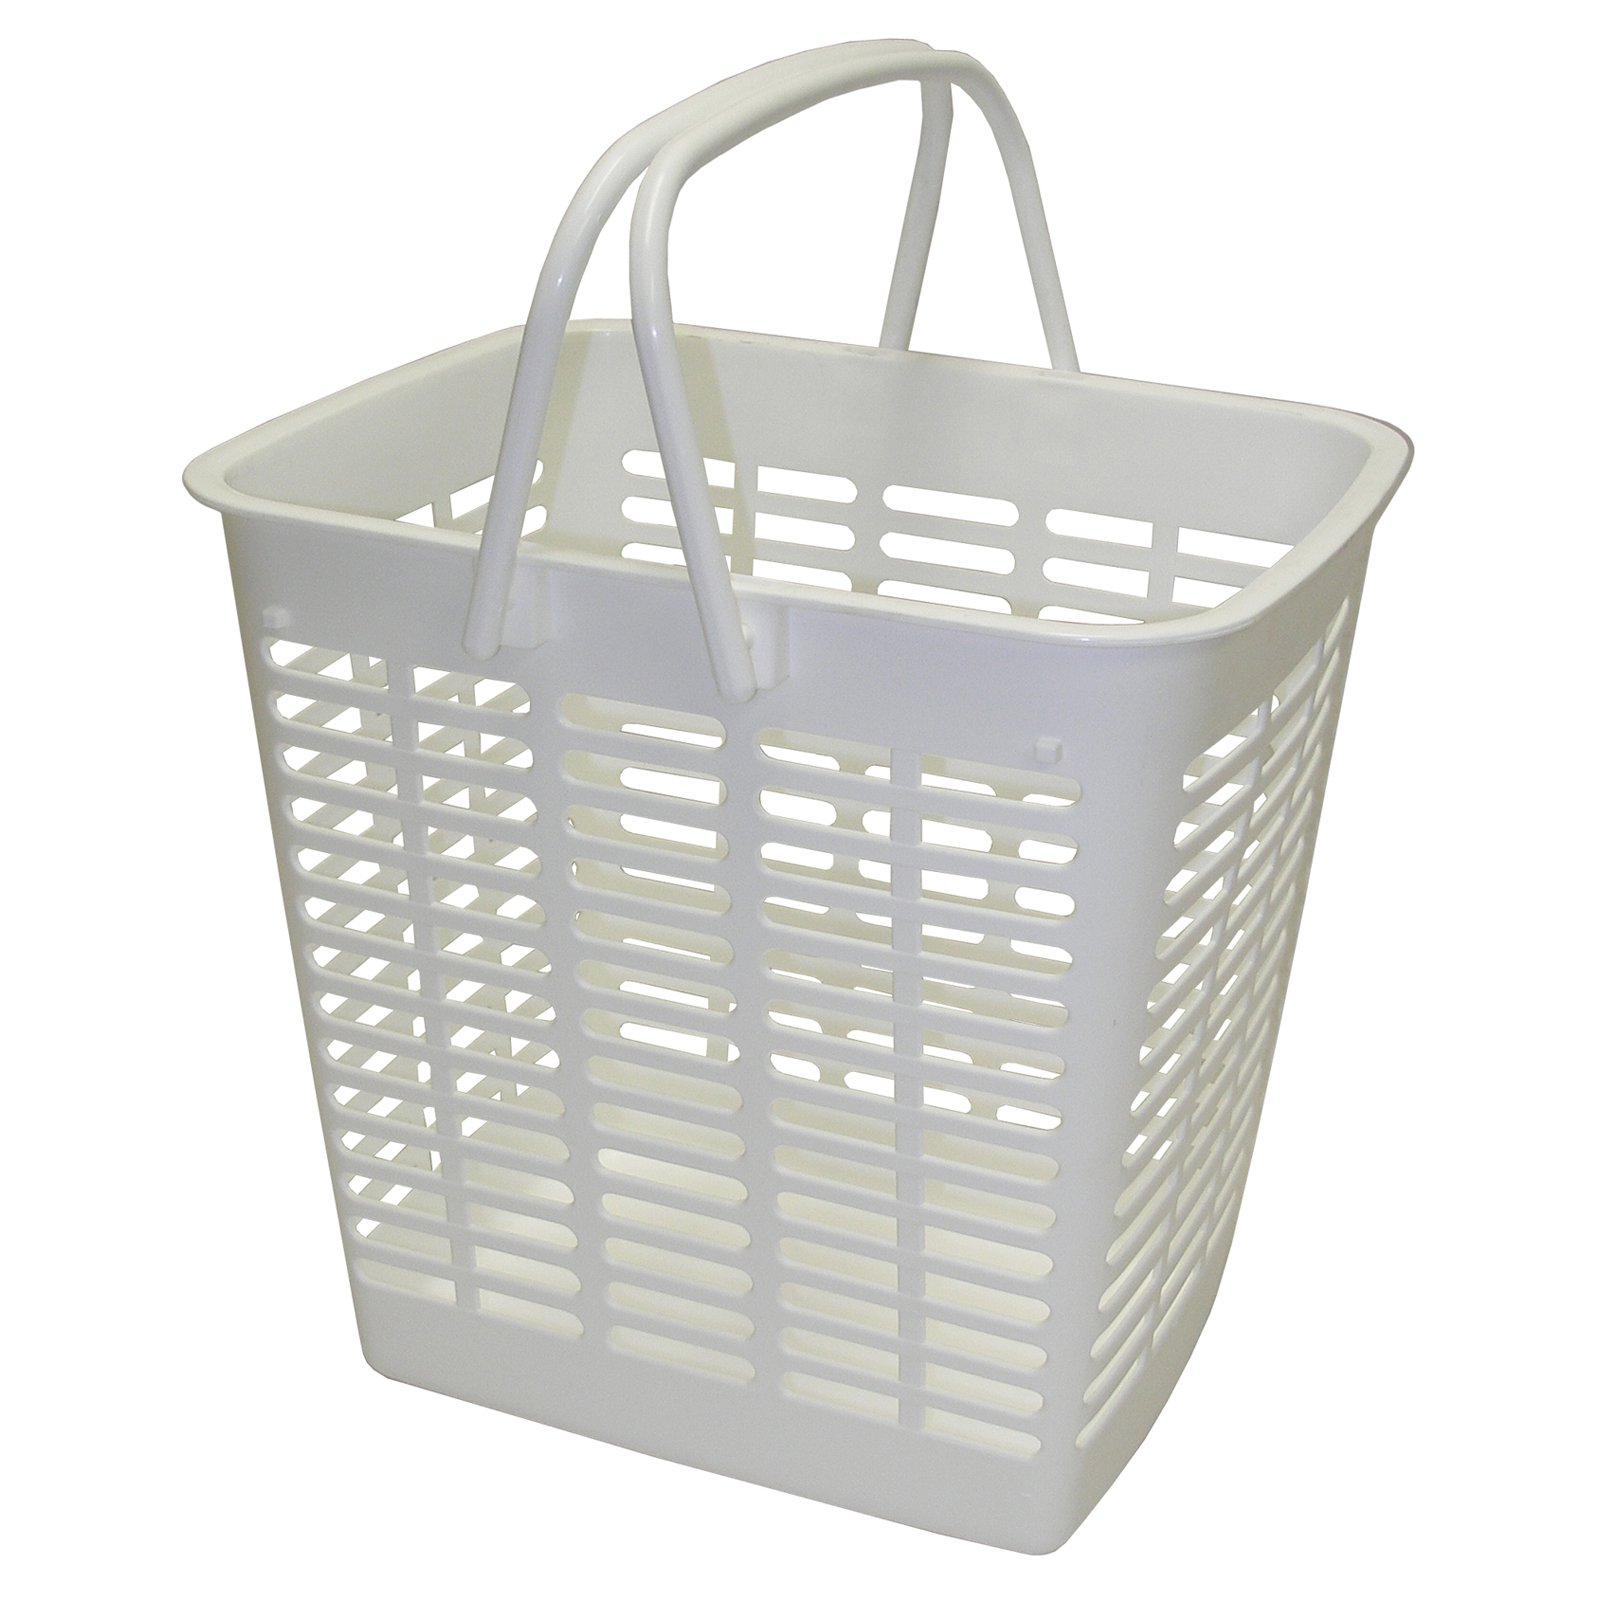 Dial Industries E1210W White Mini Tote Basket